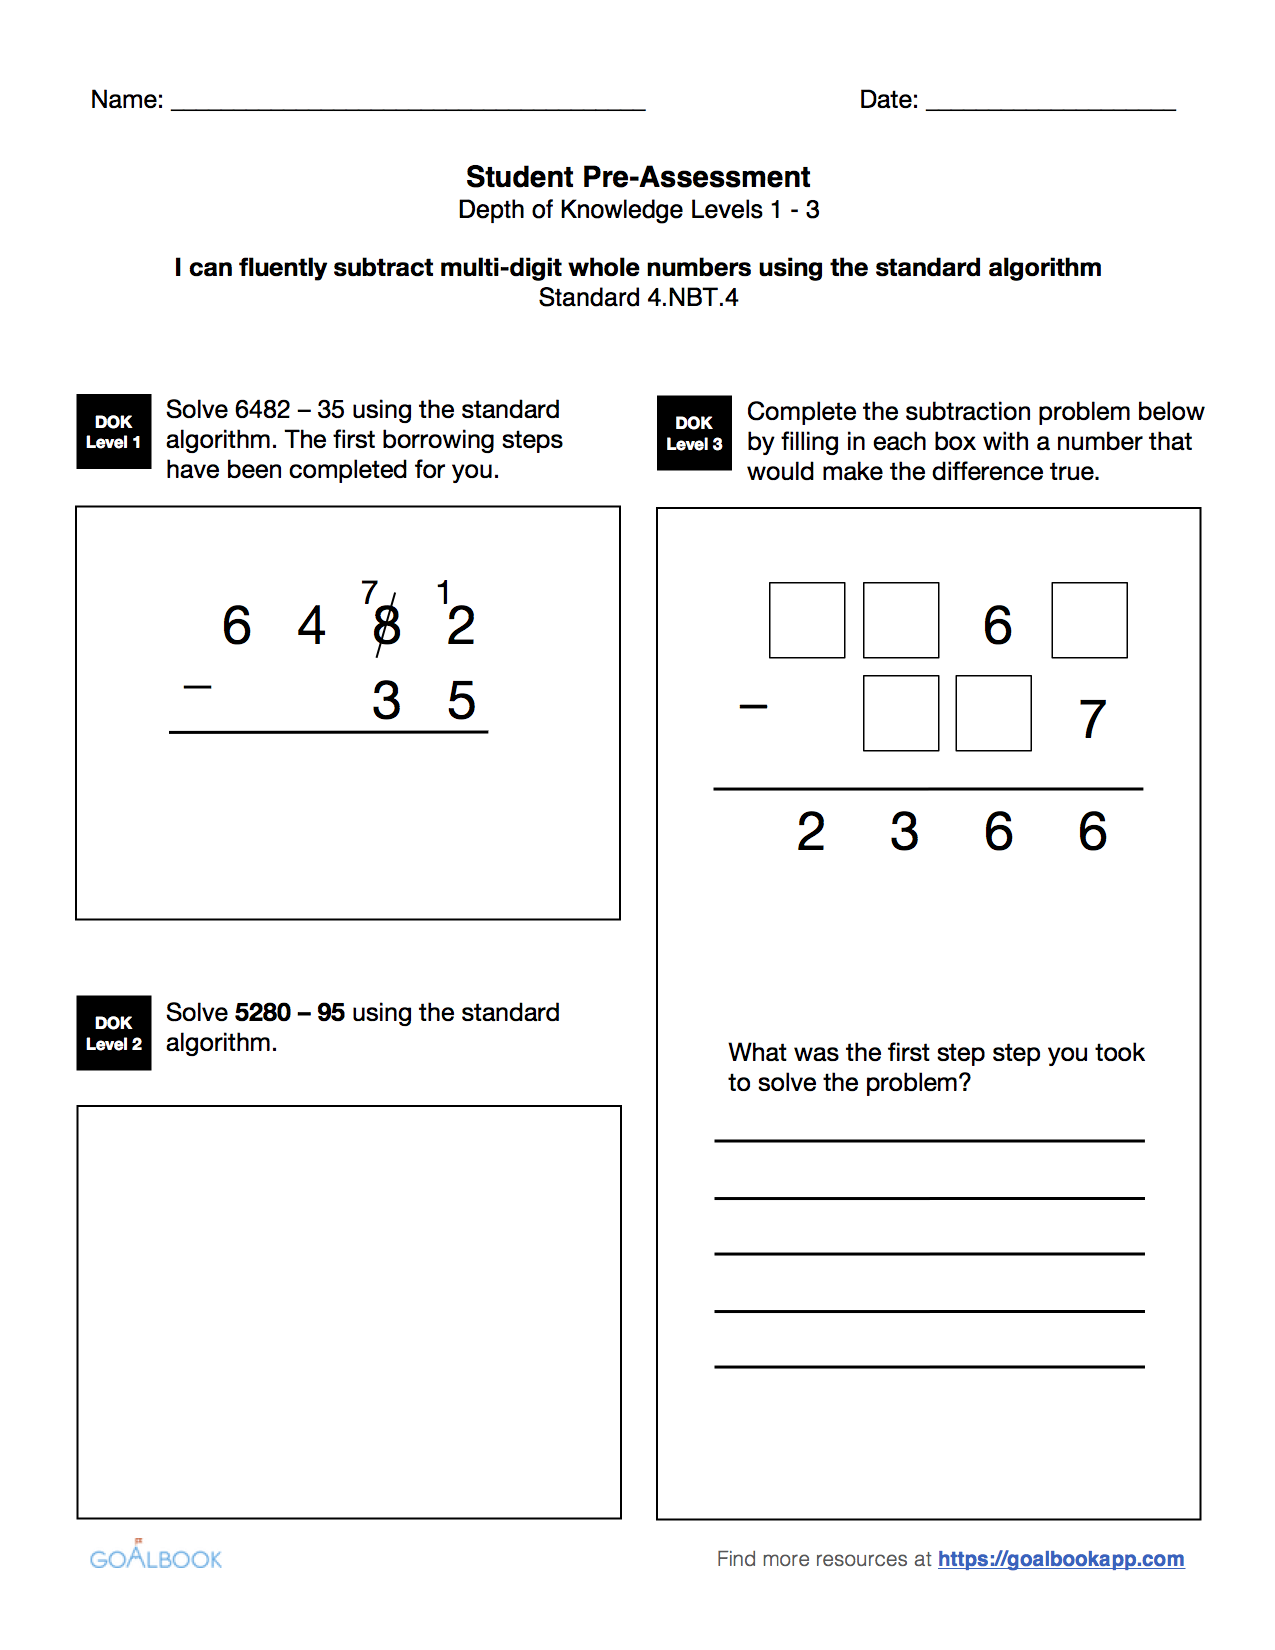 worksheet Adding And Subtracting Multi Digit Numbers 4 nbt fluently add and subtract math number operations in favorite